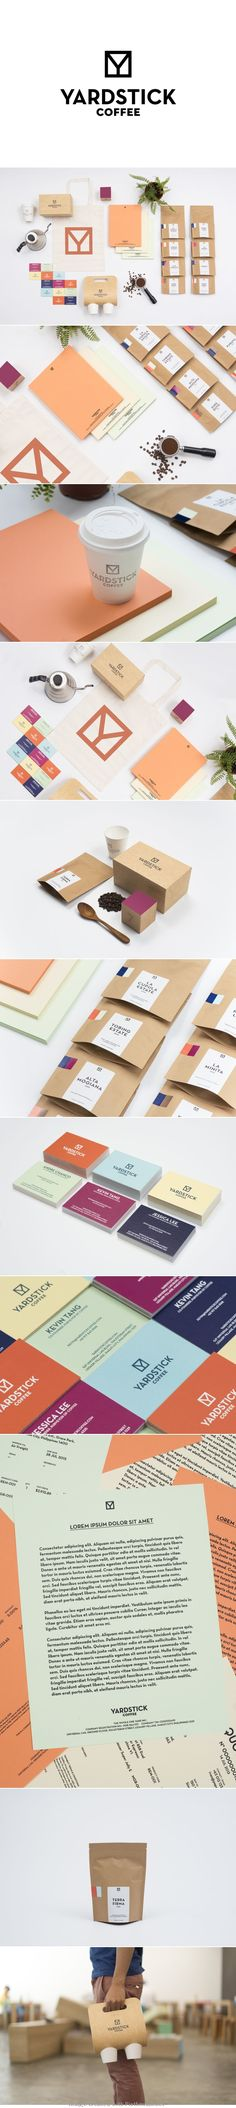 Yardstick Coffee time for coffee #identity #packaging #branding PD